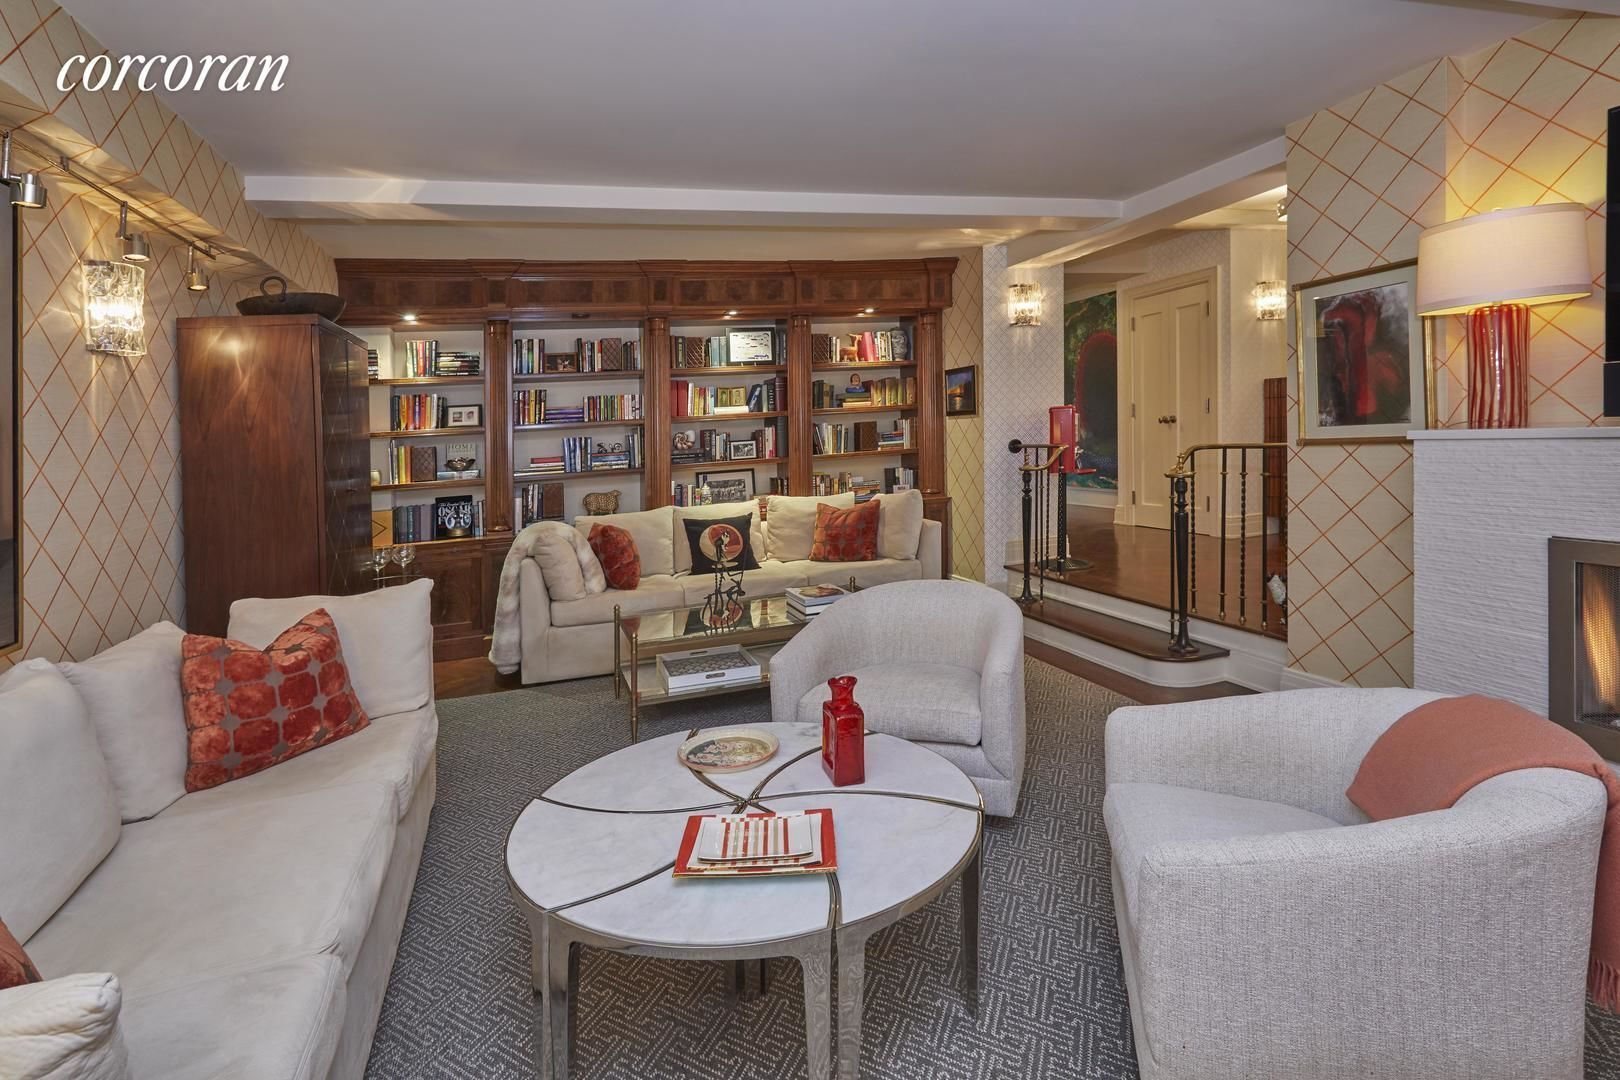 Apartment for sale at 22 Riverside Drive, Apt 4